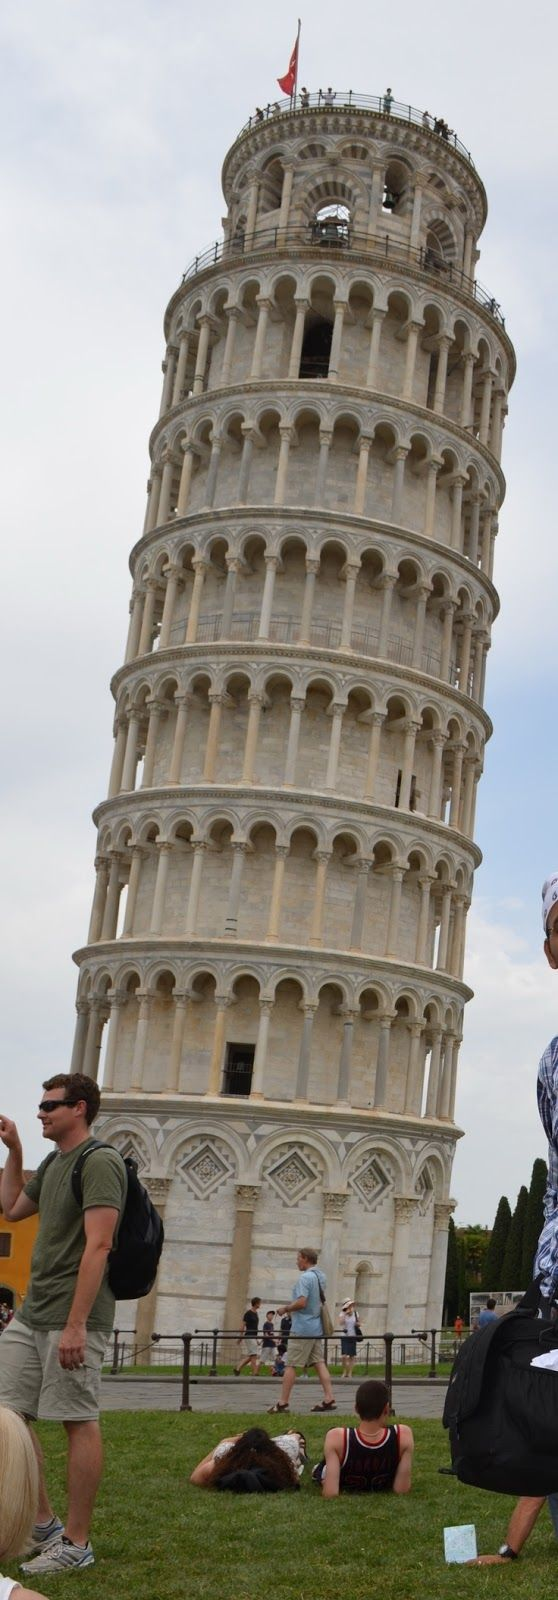 The Leaning Tower of Pisa, Best Places To Visit - Italy